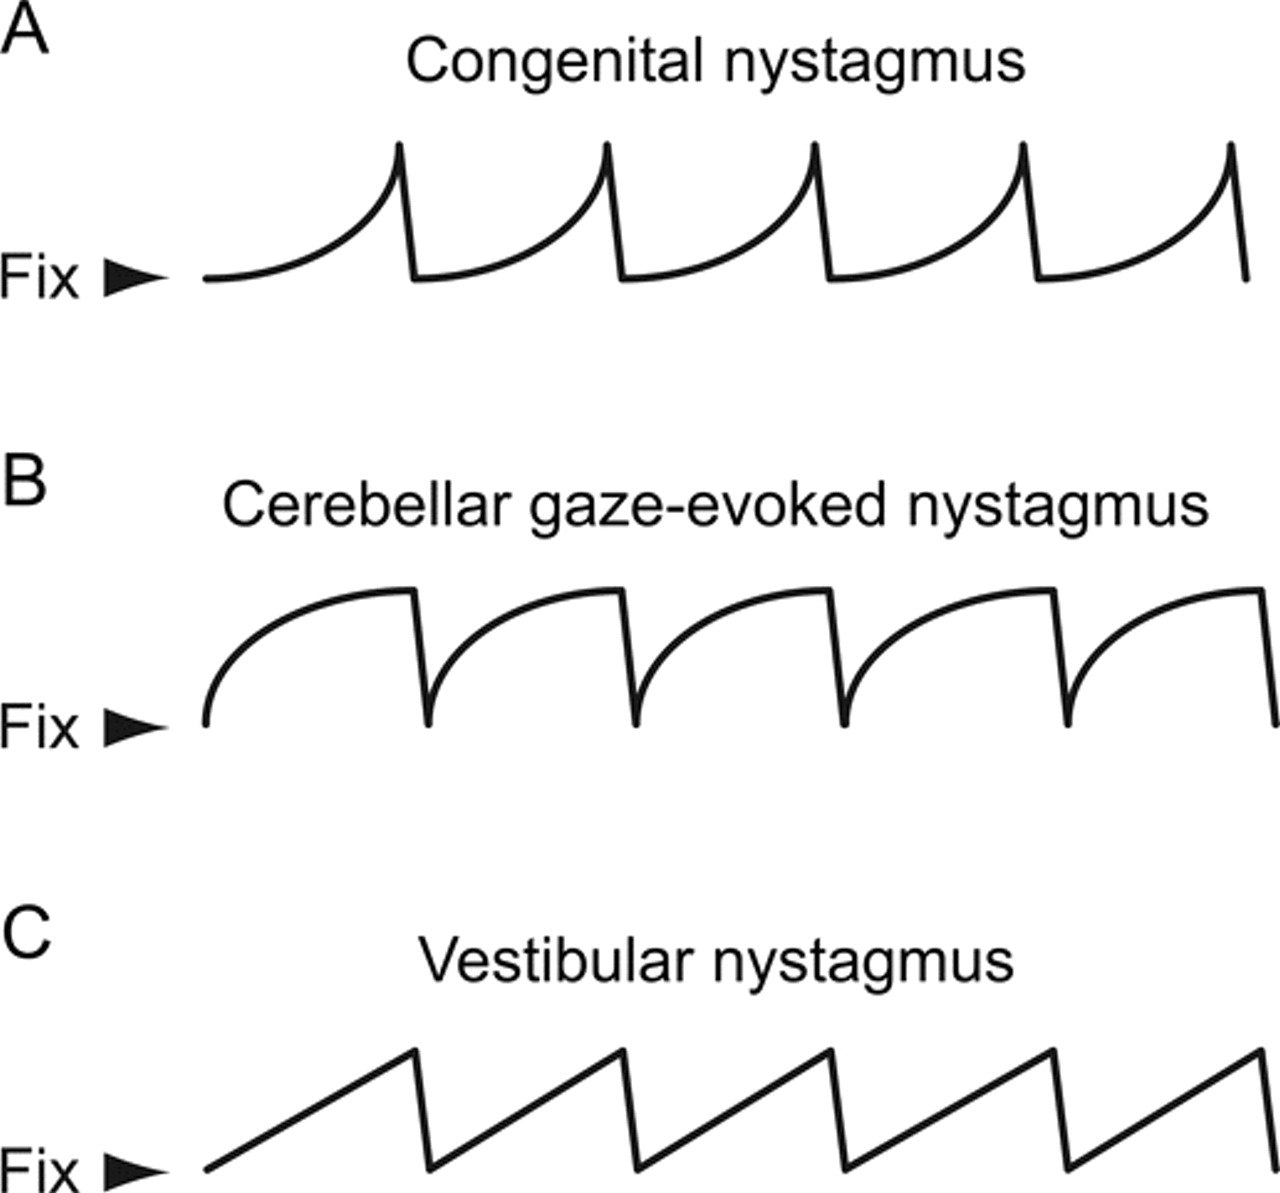 Teaching Video NeuroImage: Acquired or congenital gaze